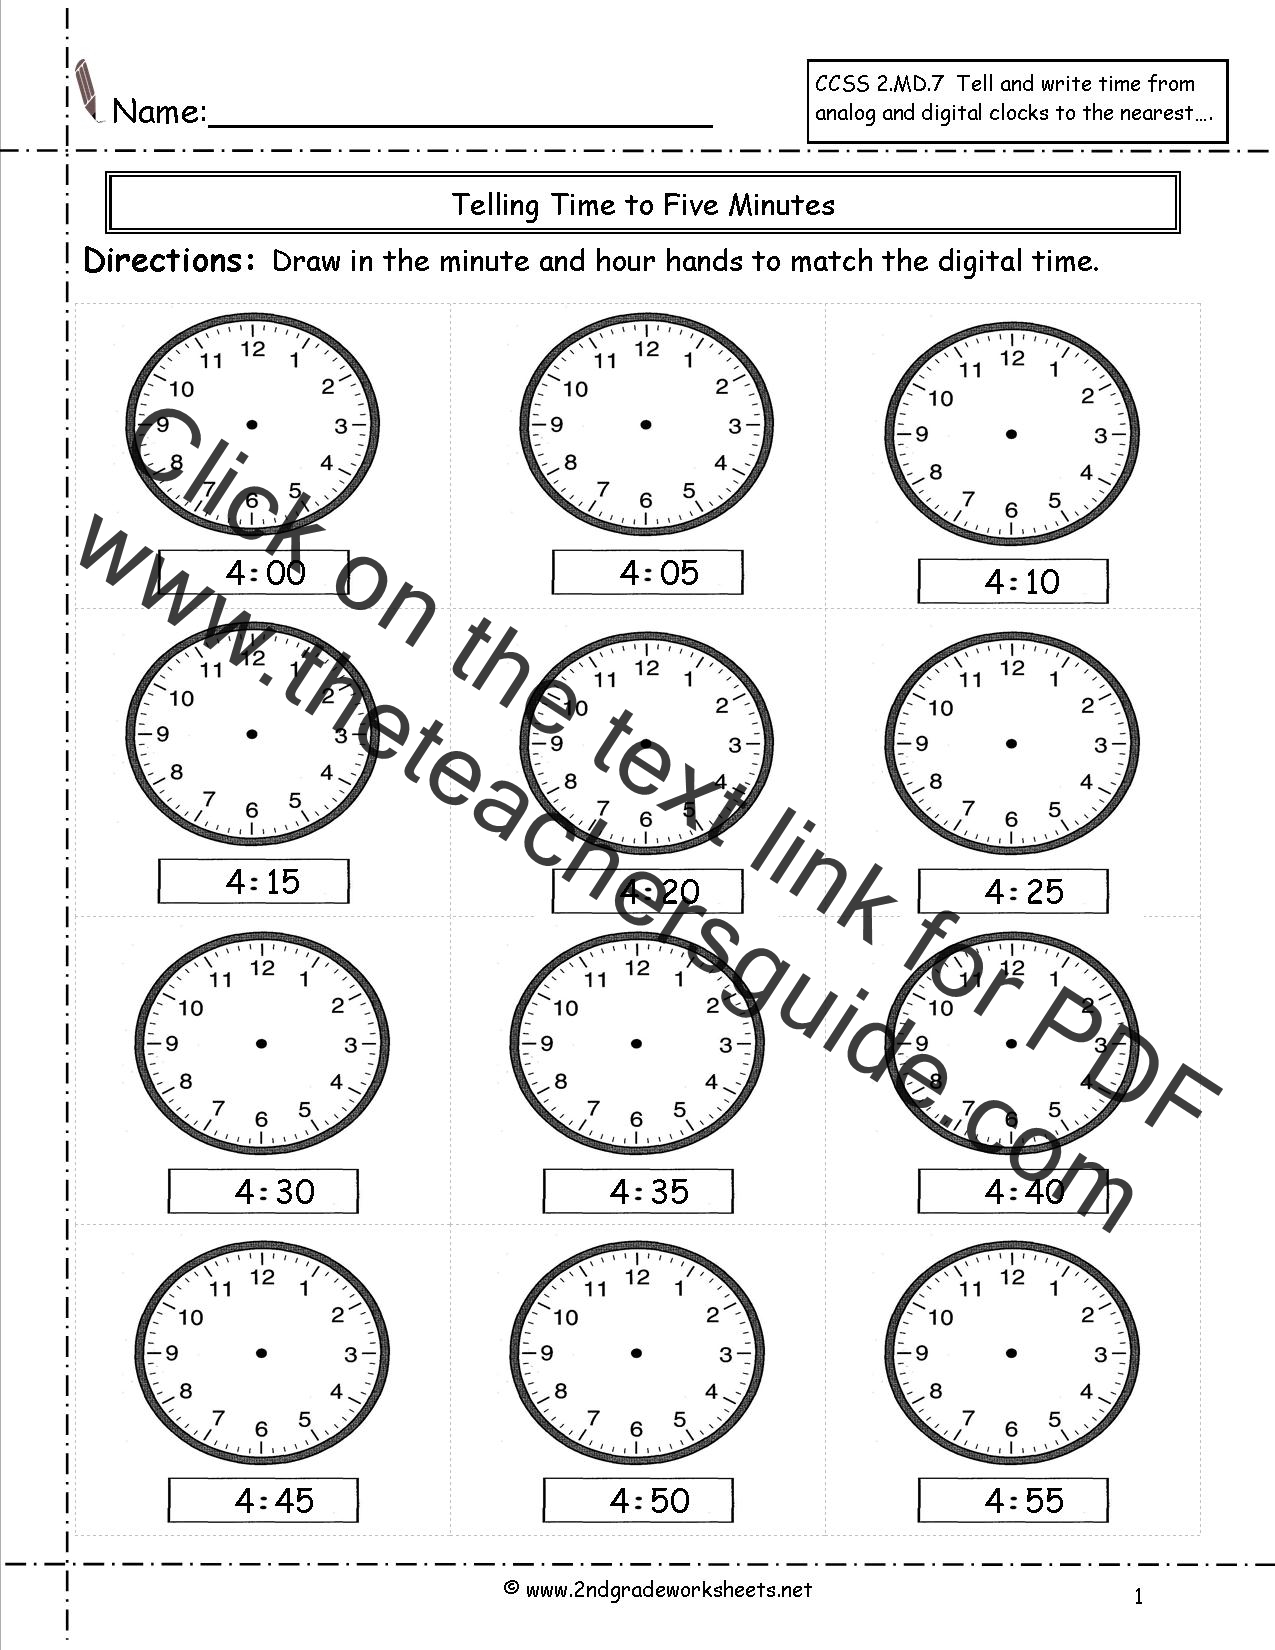 Free Worksheet Digital Clock Worksheets ccss 2 md 7 worksheets telling time to five minutes worksheets